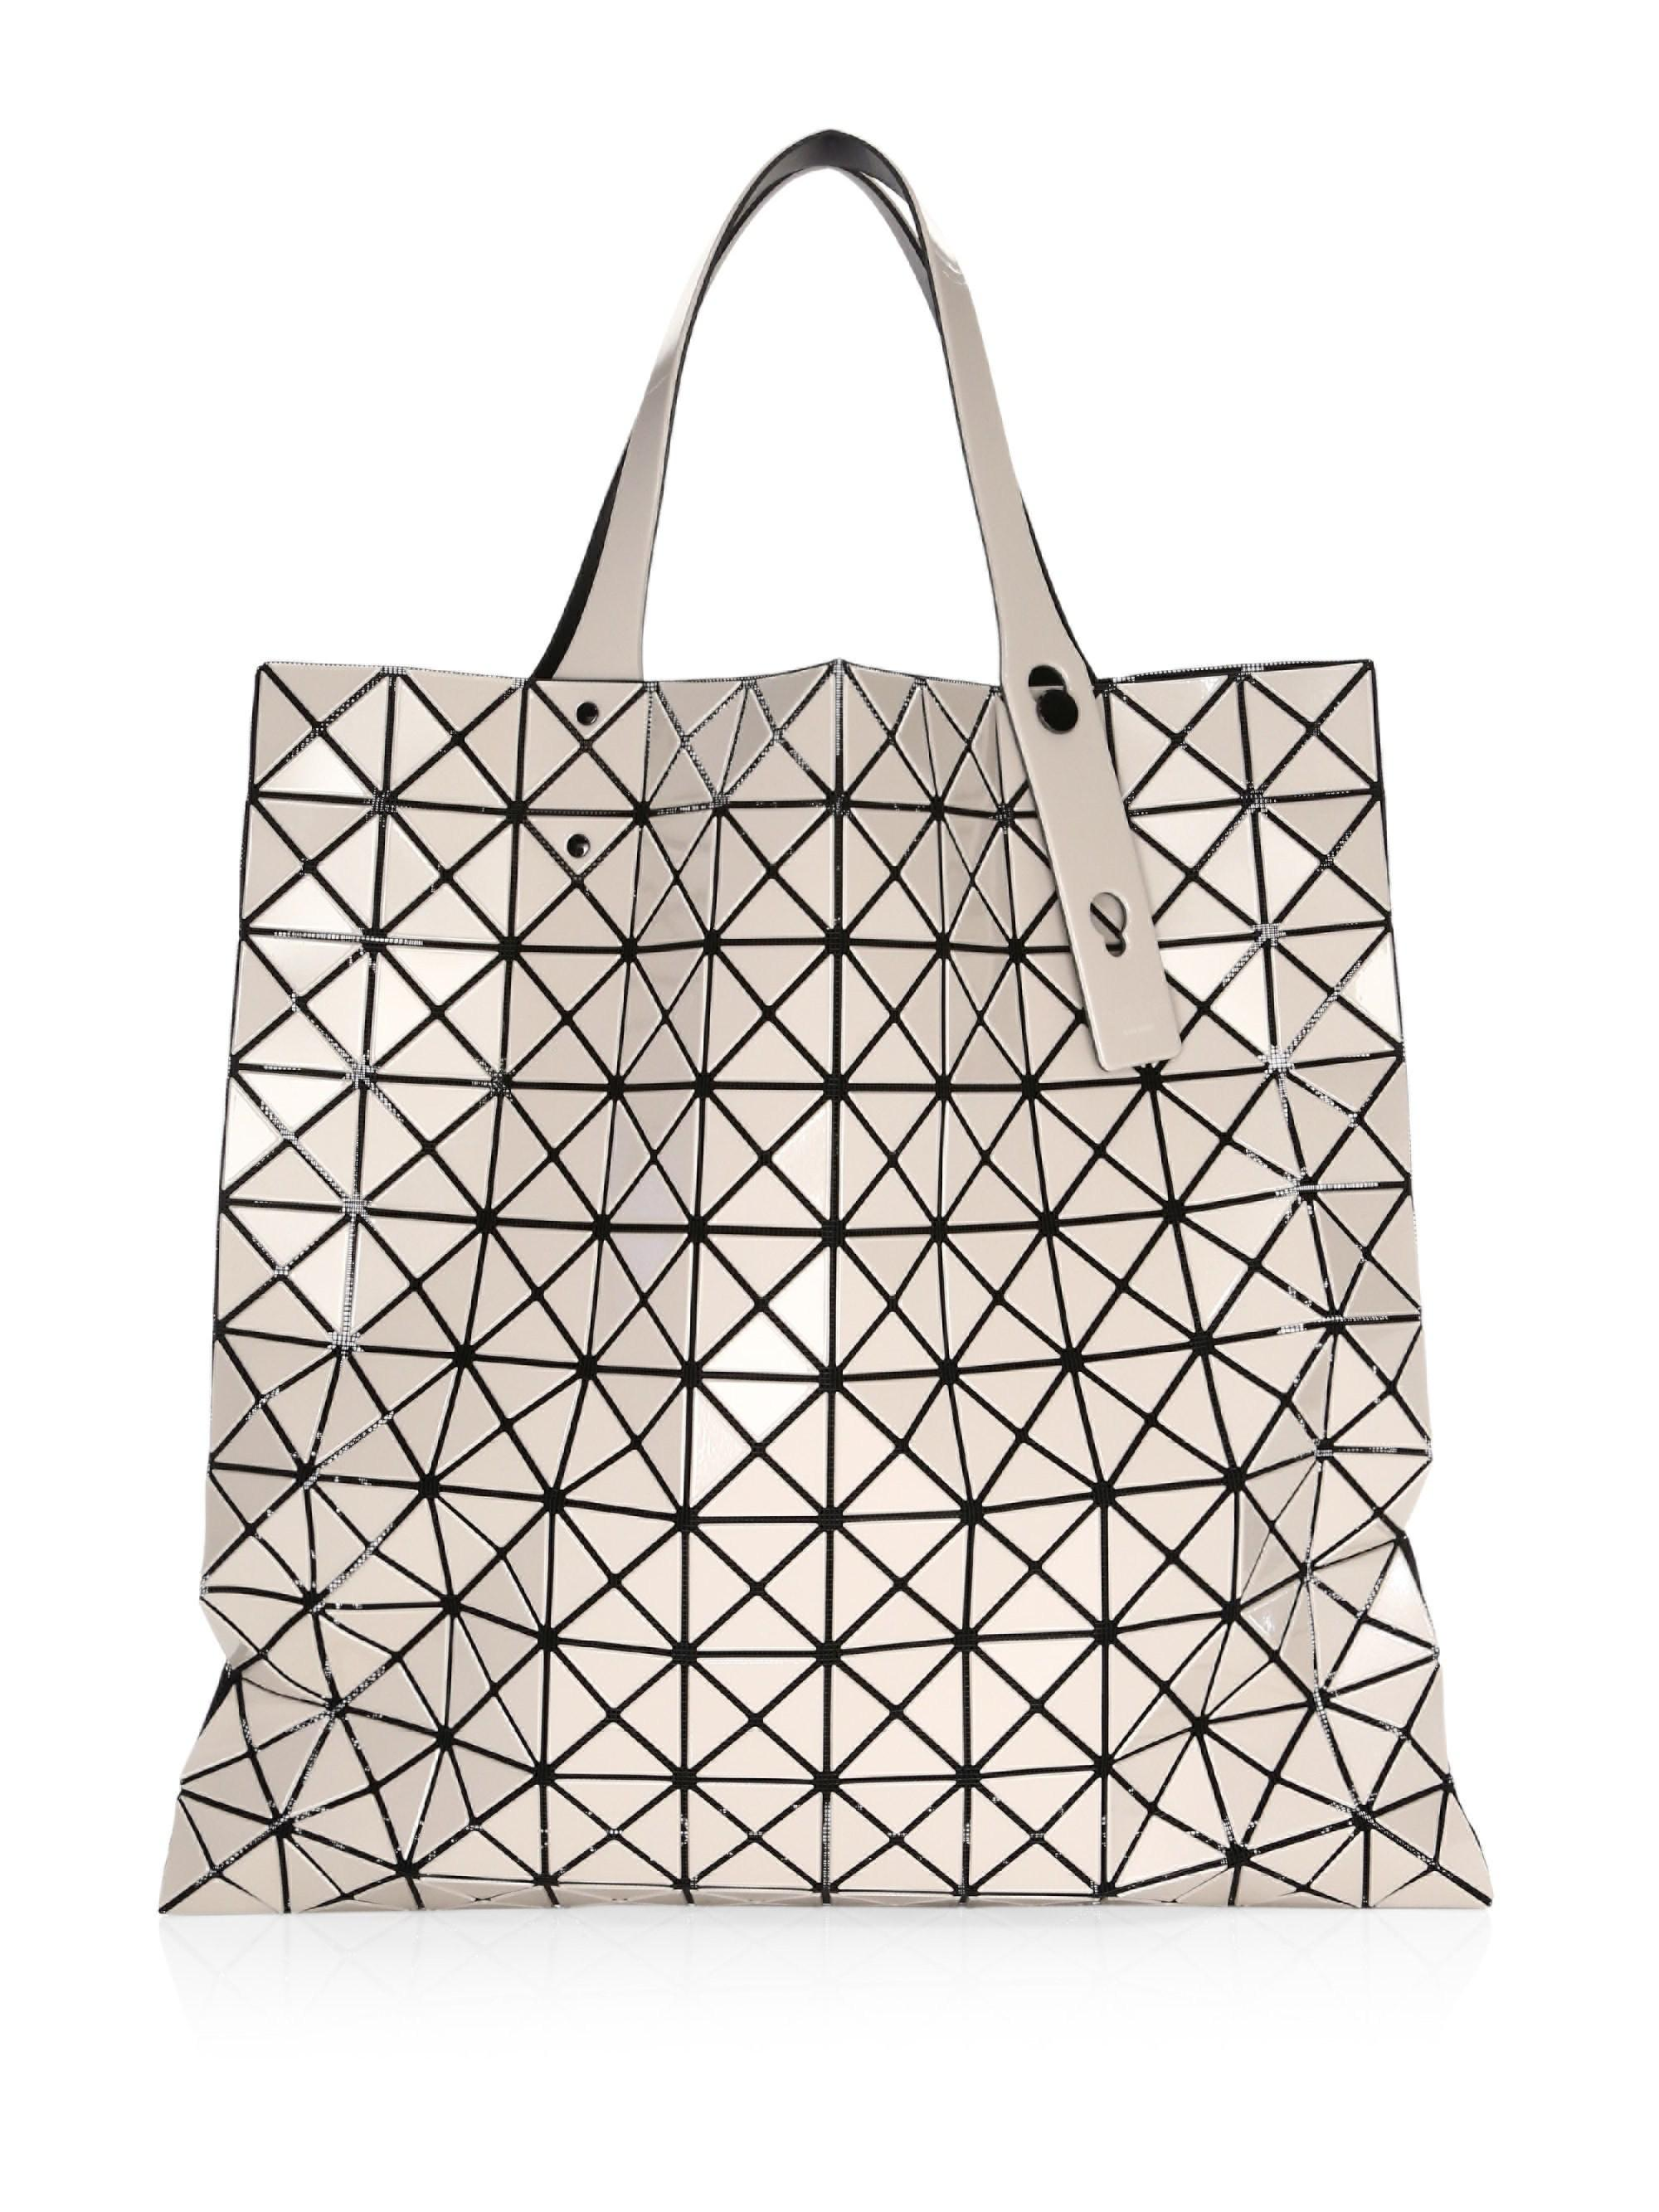 Lyst - Bao Bao Issey Miyake Prism Basic Tote in Natural c56b3247fe92b